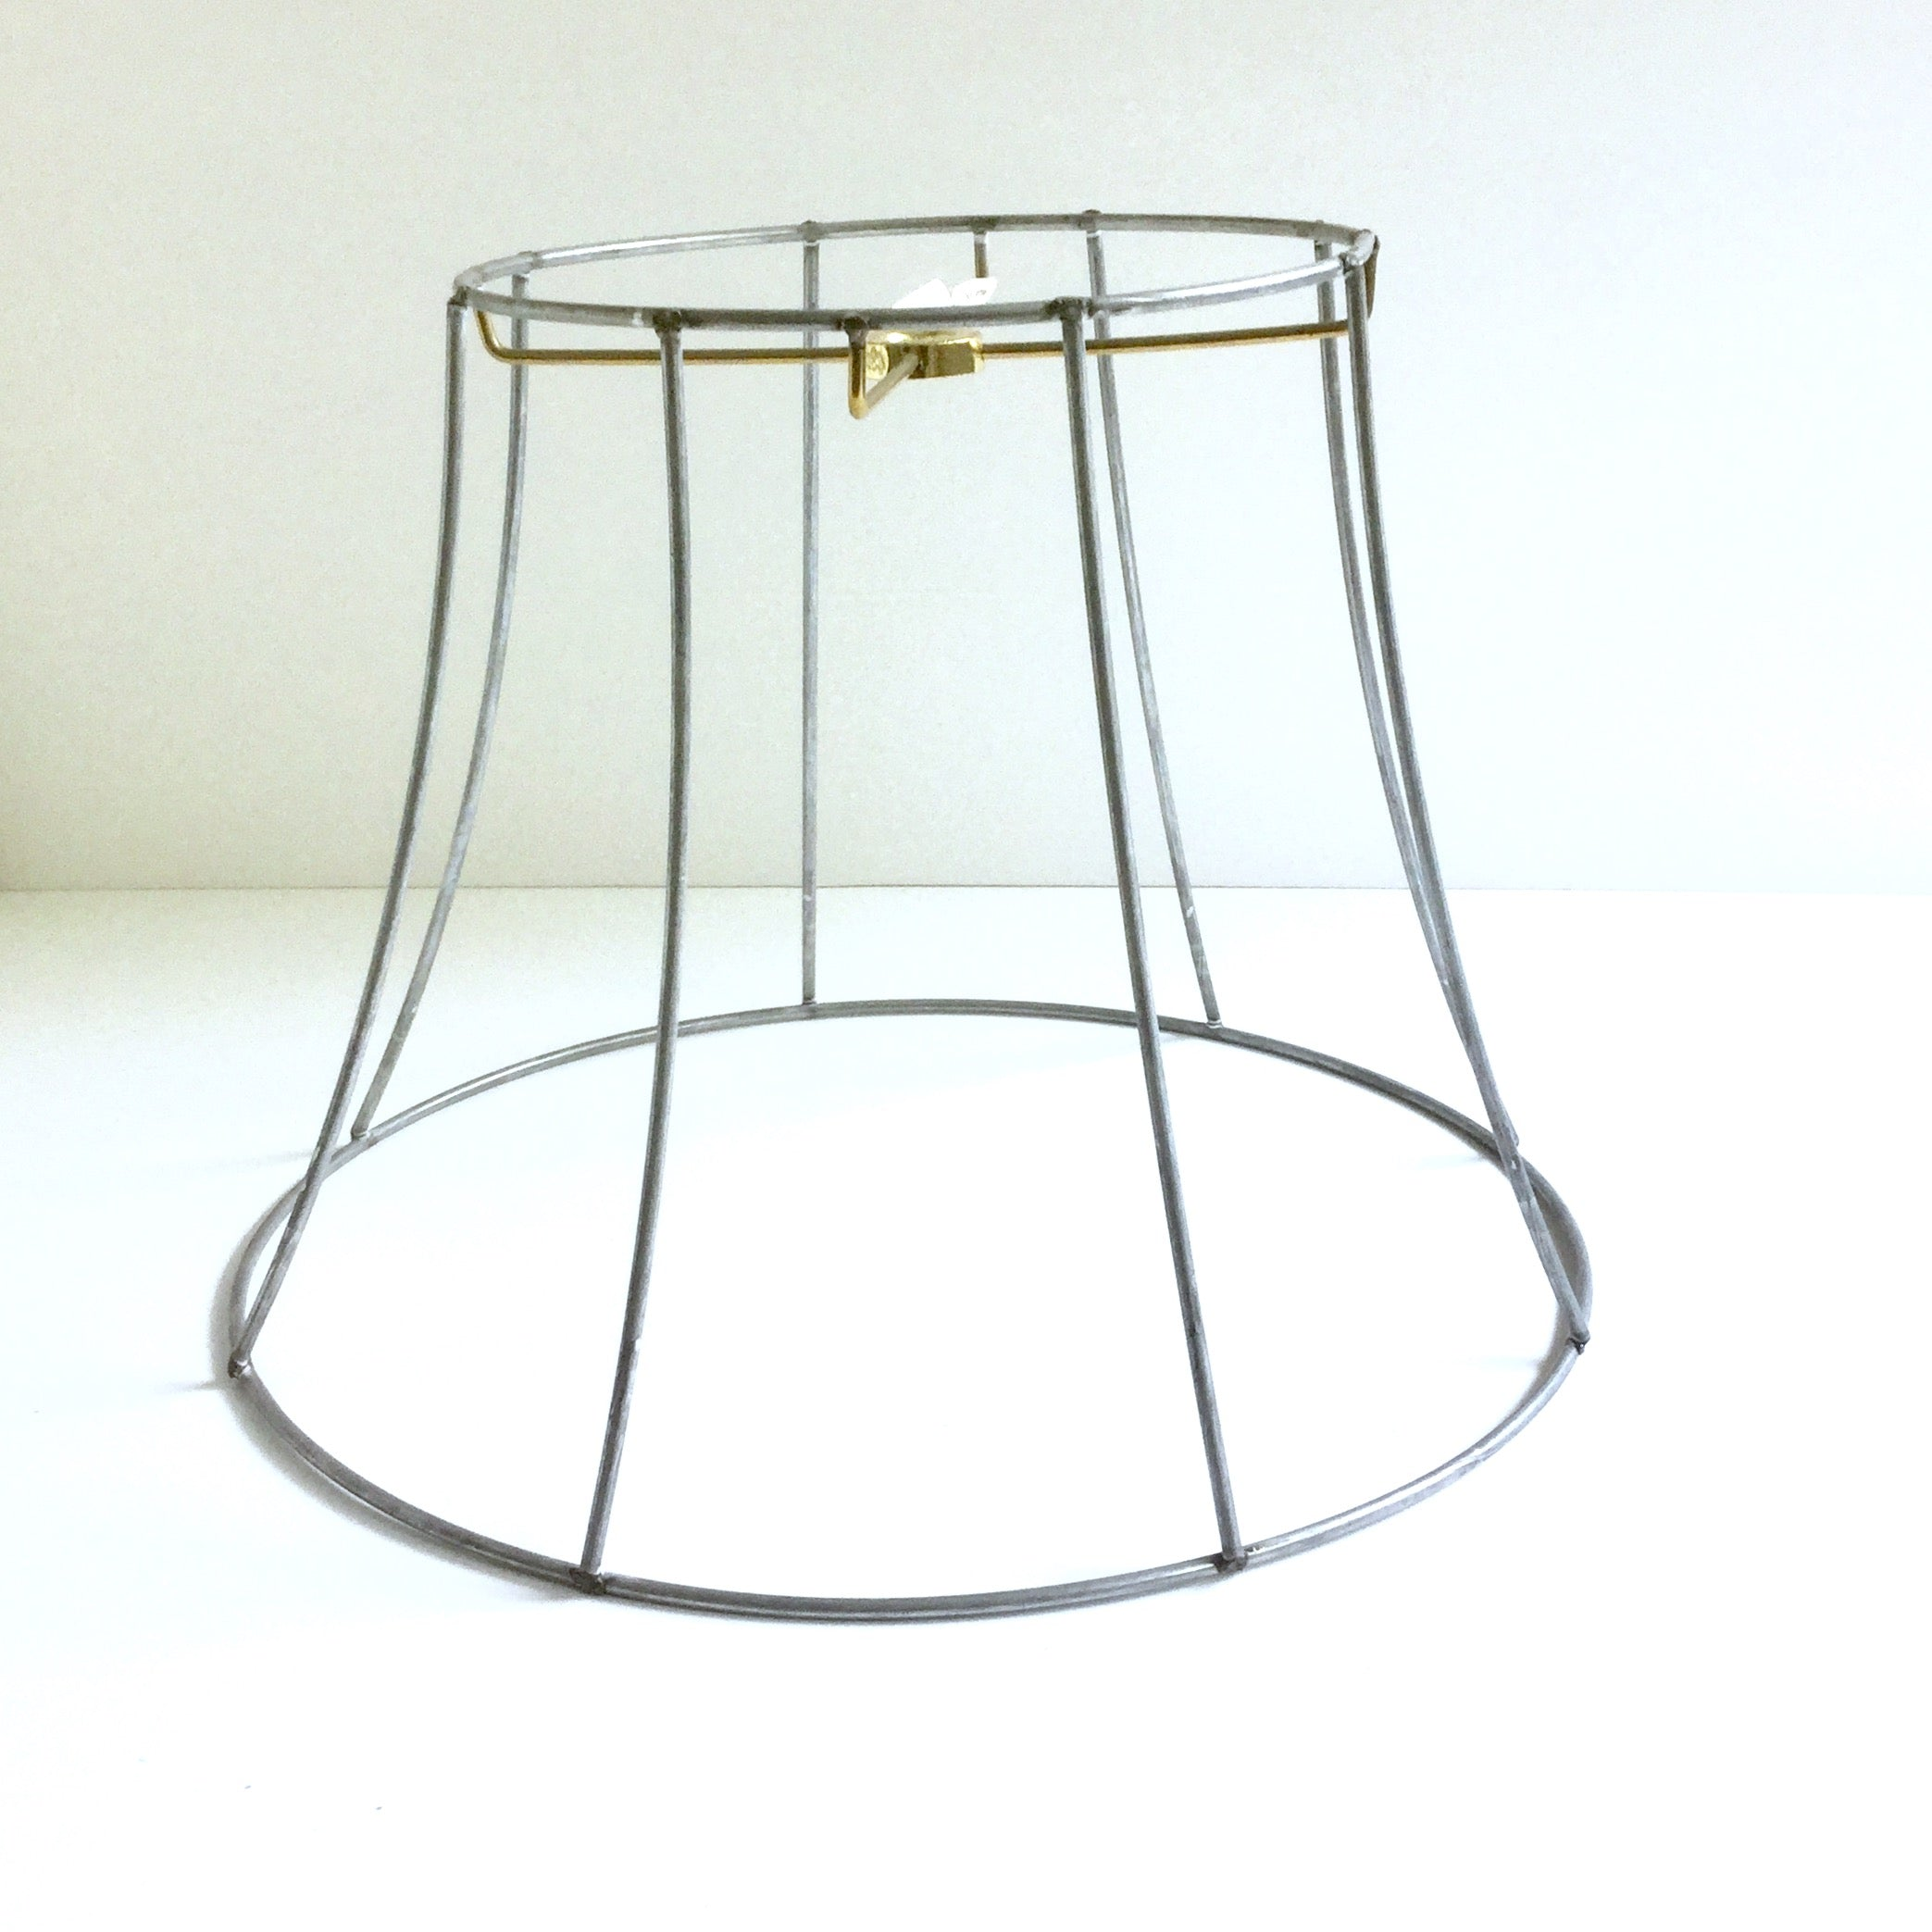 Wire lampshade frames wire center lamp shade frames wire rose mille rh rosemille com wire lampshade frames for sale wire lampshade keyboard keysfo